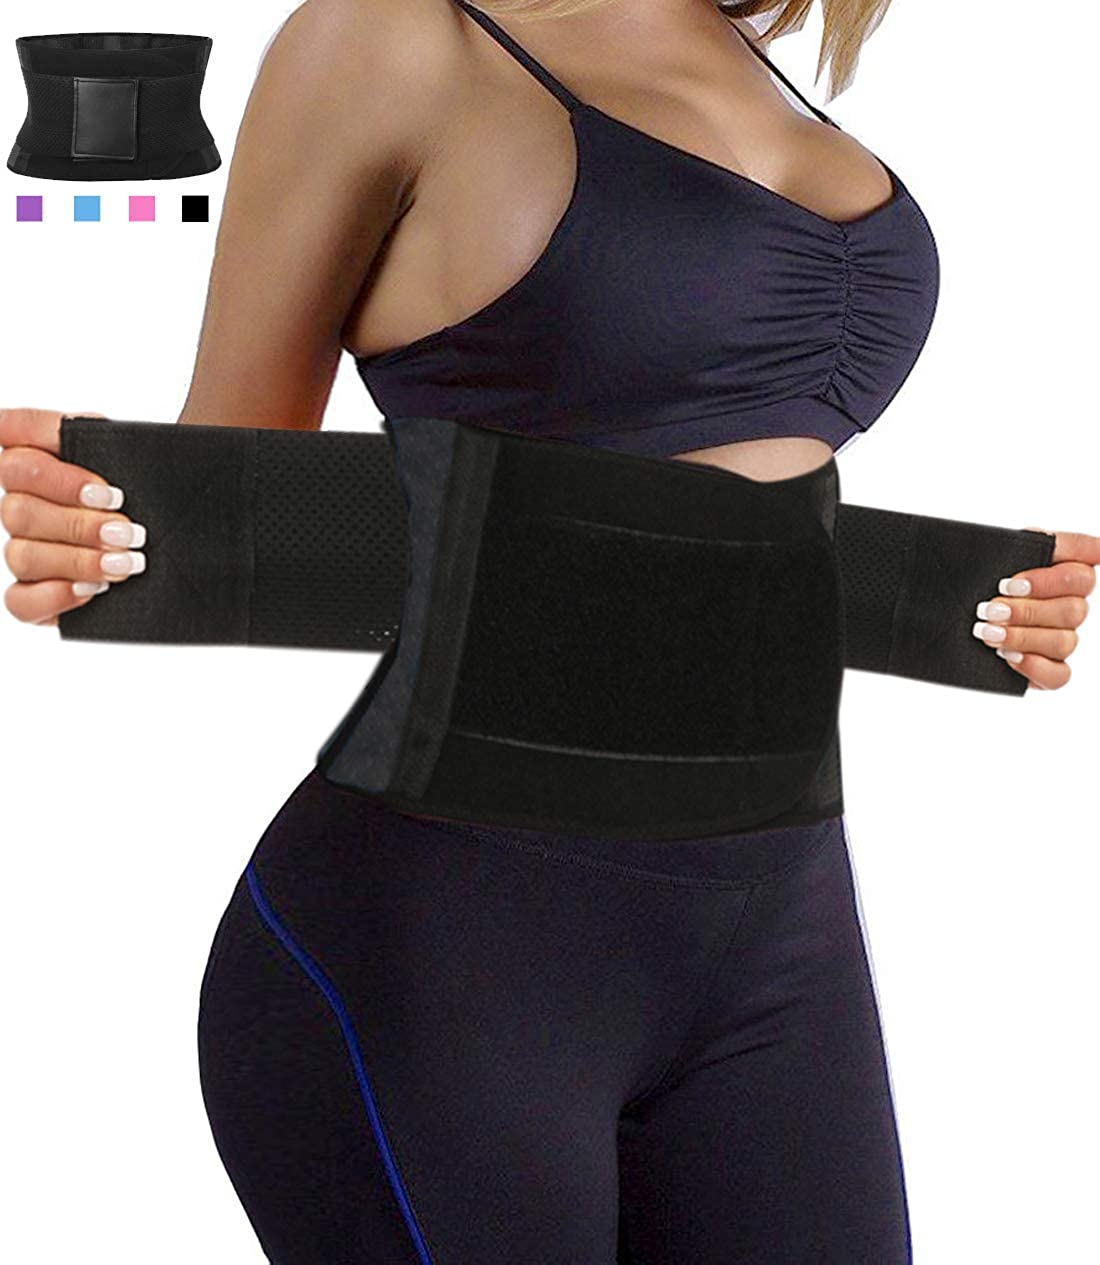 29a7931815 HEXIN Waist Cincher Girdle Body Shaper Tummy Trainer Belly Training Belt for  Weight Loss Workout Fitness at Amazon Women s Clothing store